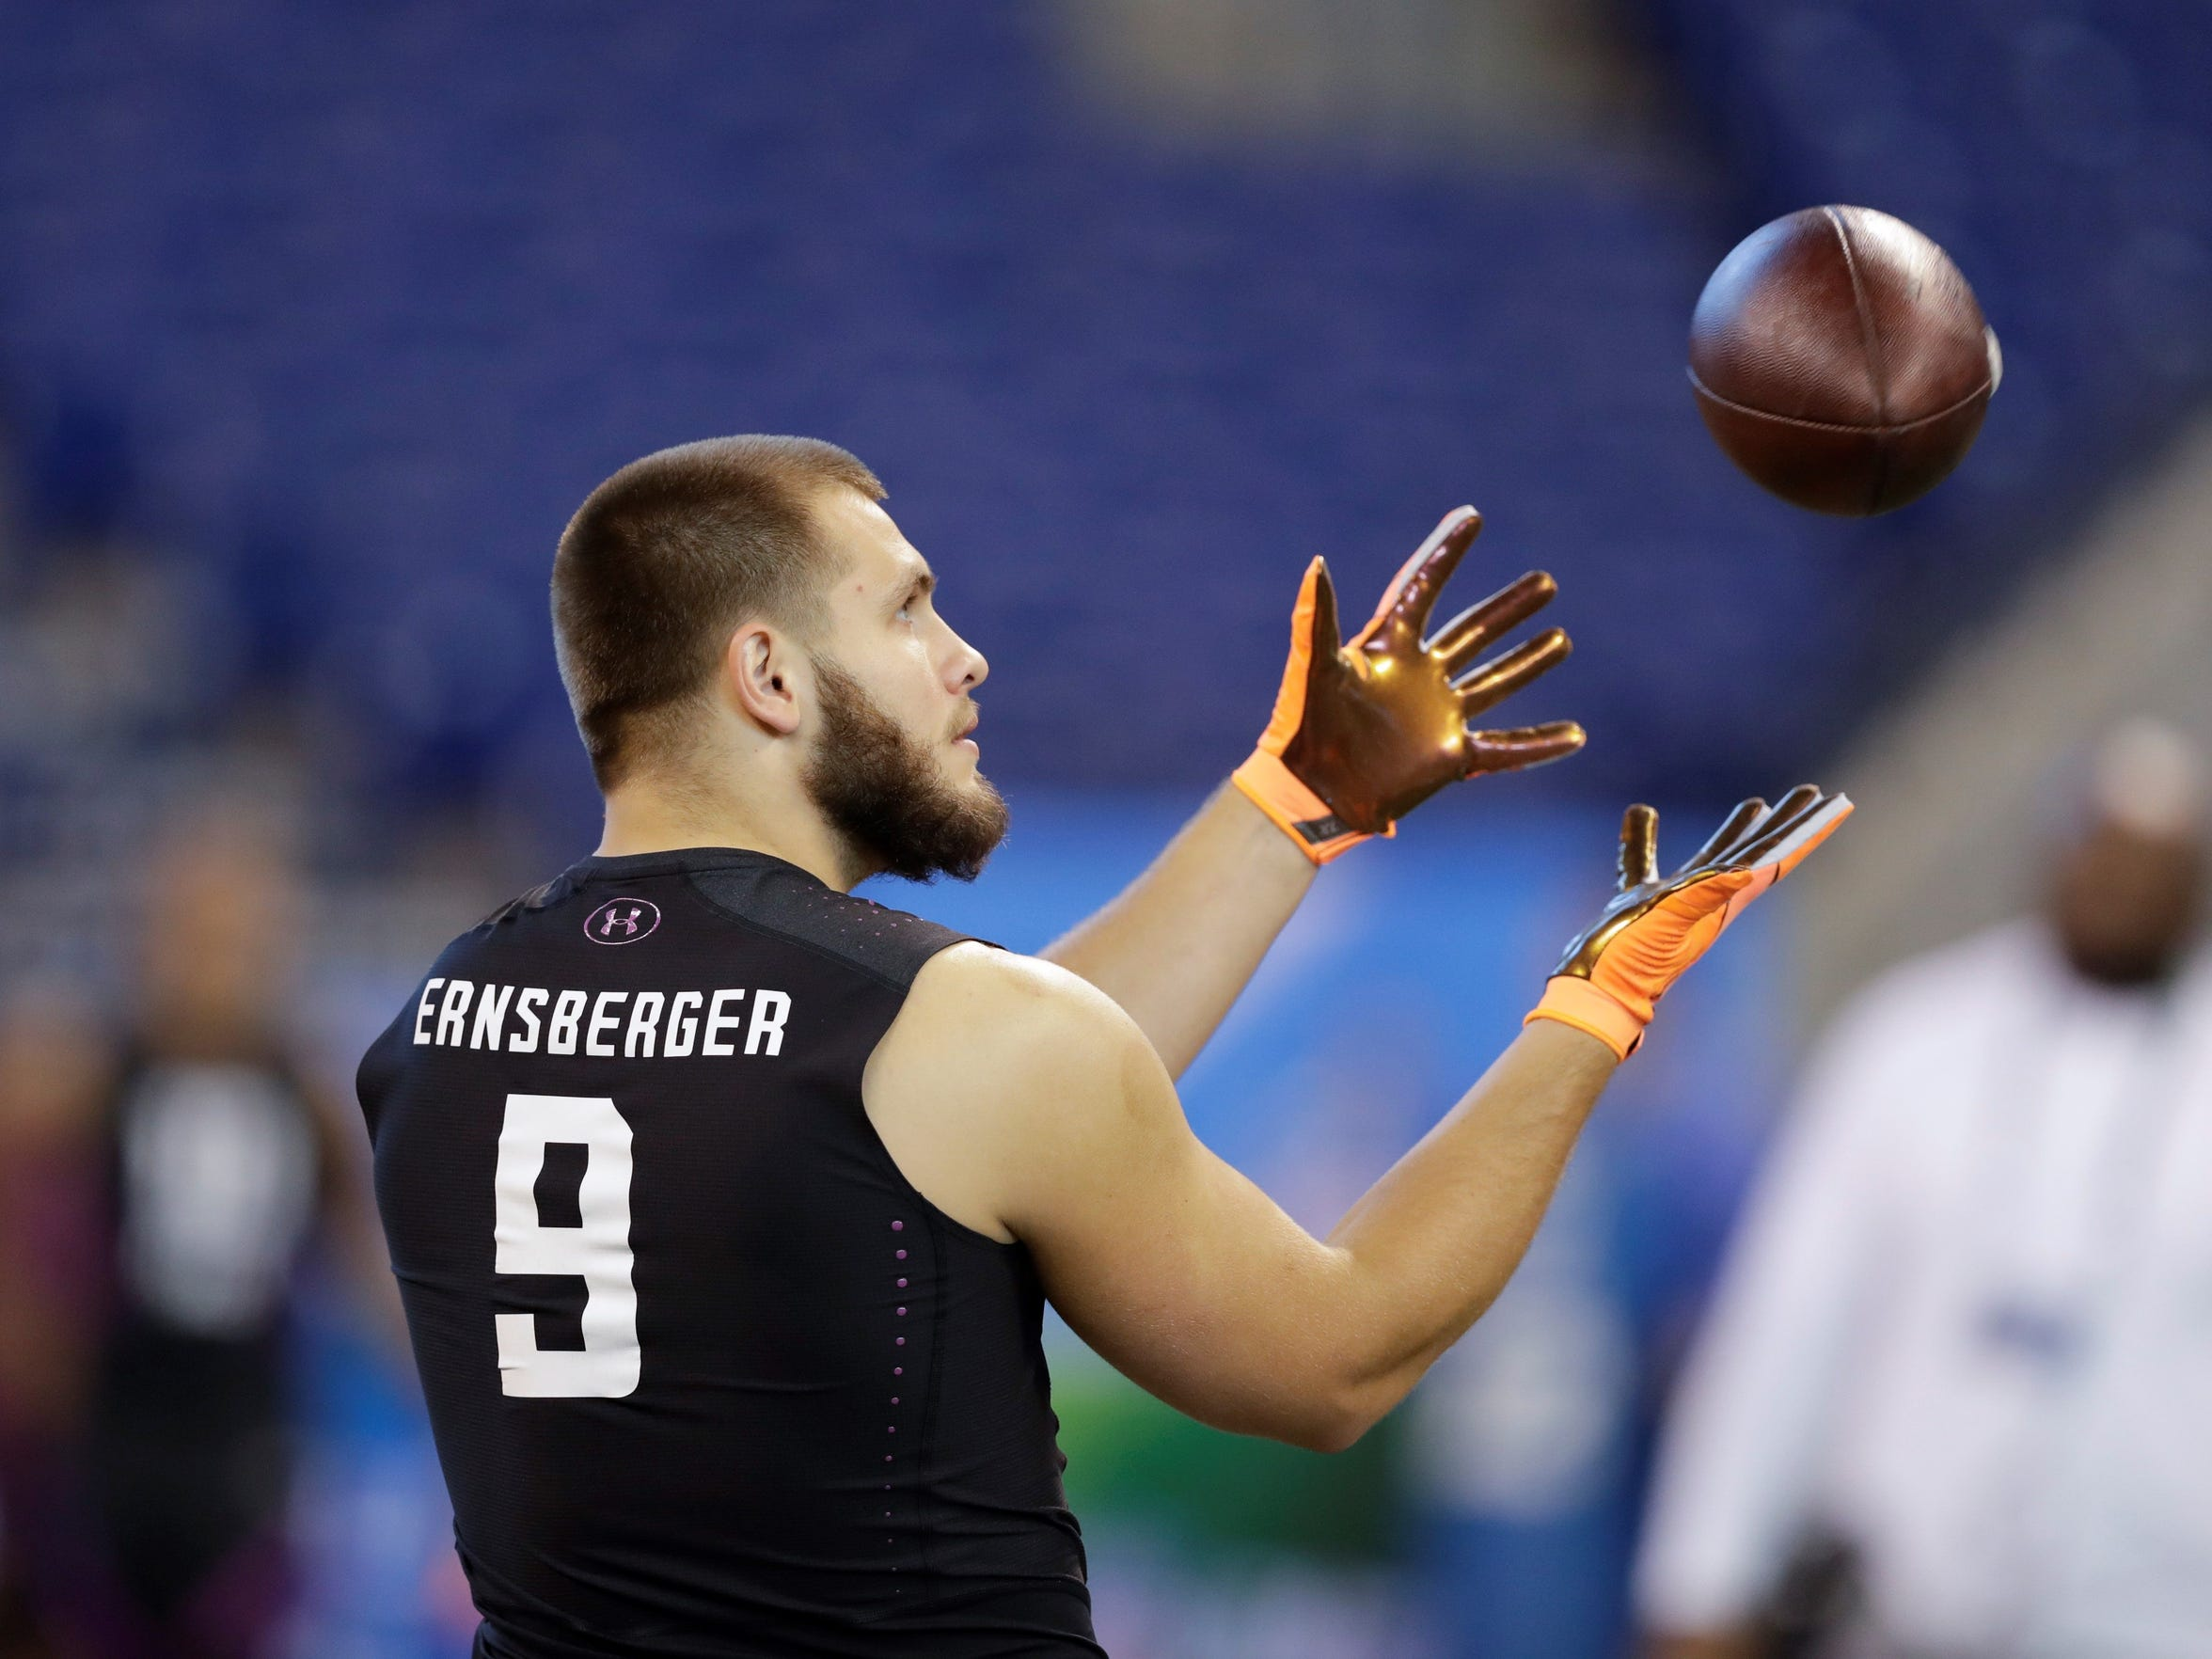 Running back Donnie Ernsberger Western Michigan running back Donnie Ernsberger runs a drill during the NFL football scouting combine, Friday, March 2, 2018, in Indianapolis.